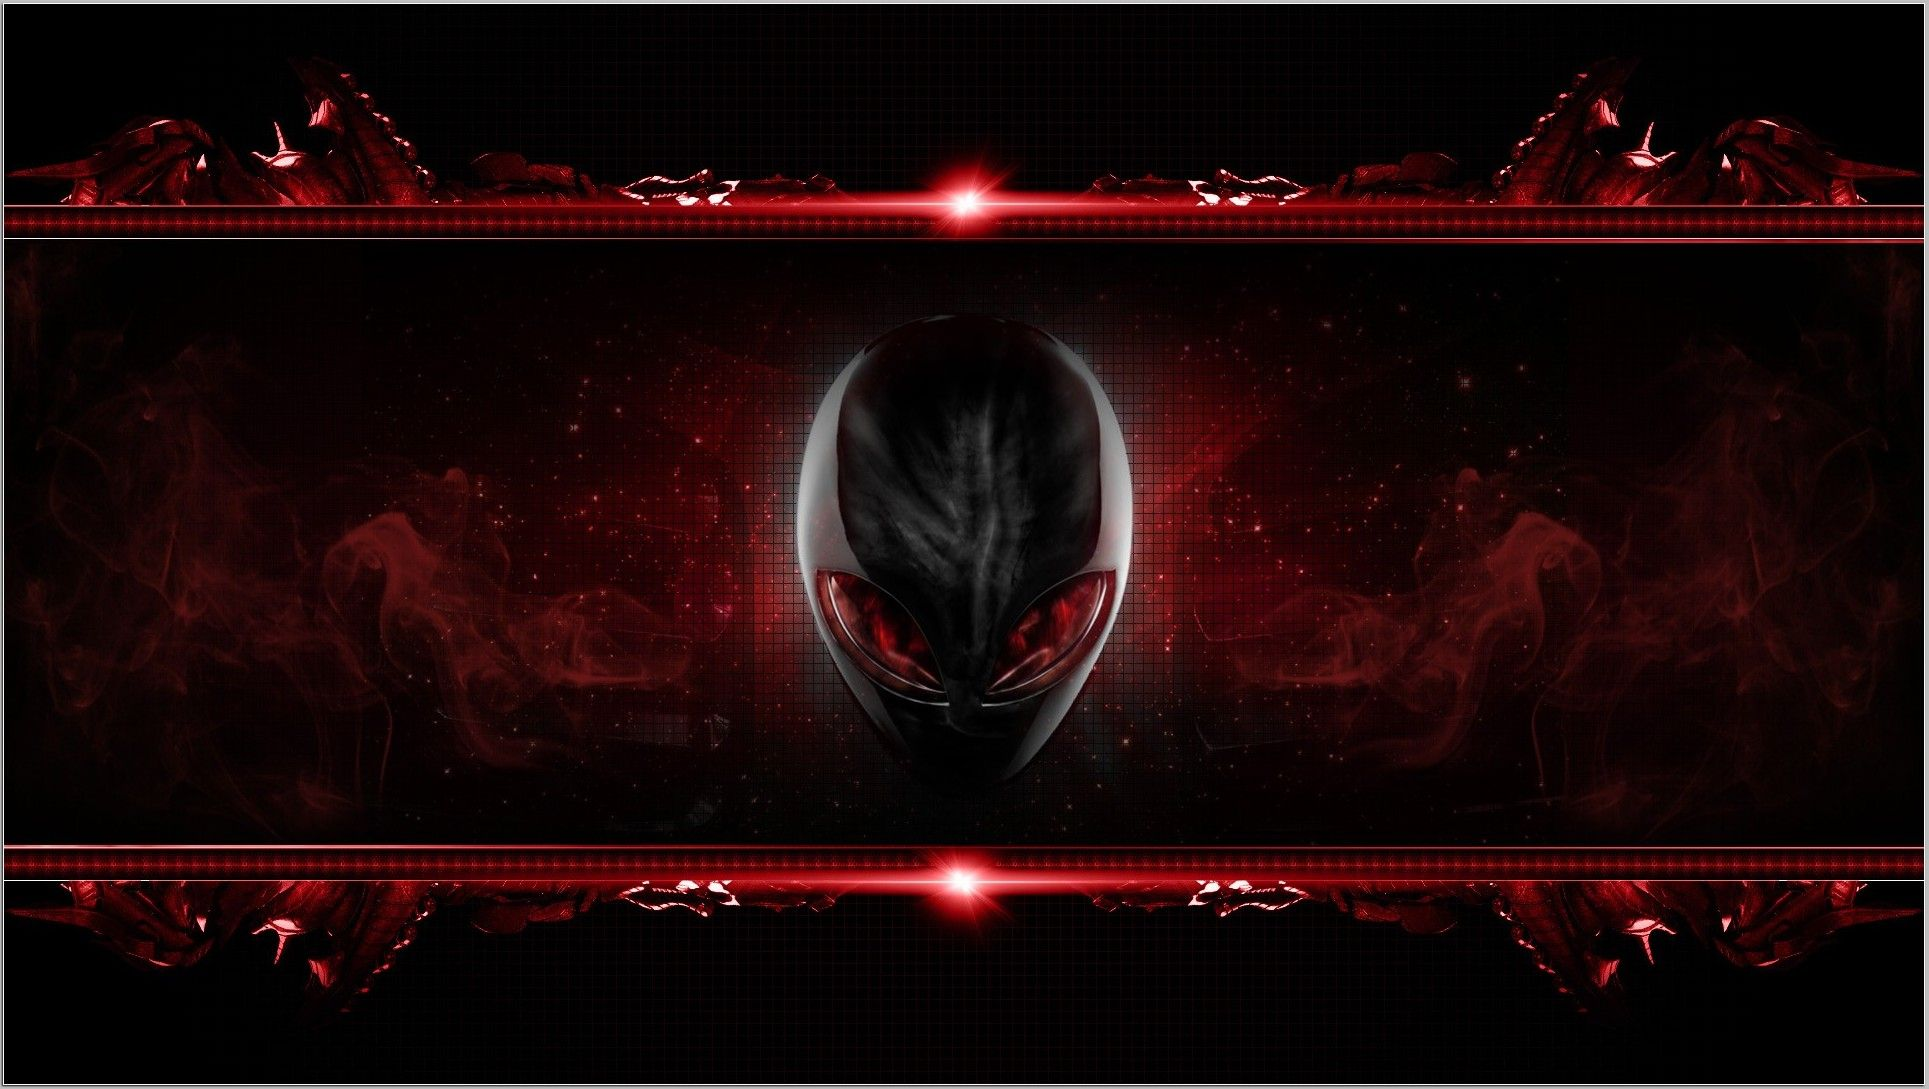 1929x1089 Top 16 alienware wallpapers our latest collection - PicsBroker.com